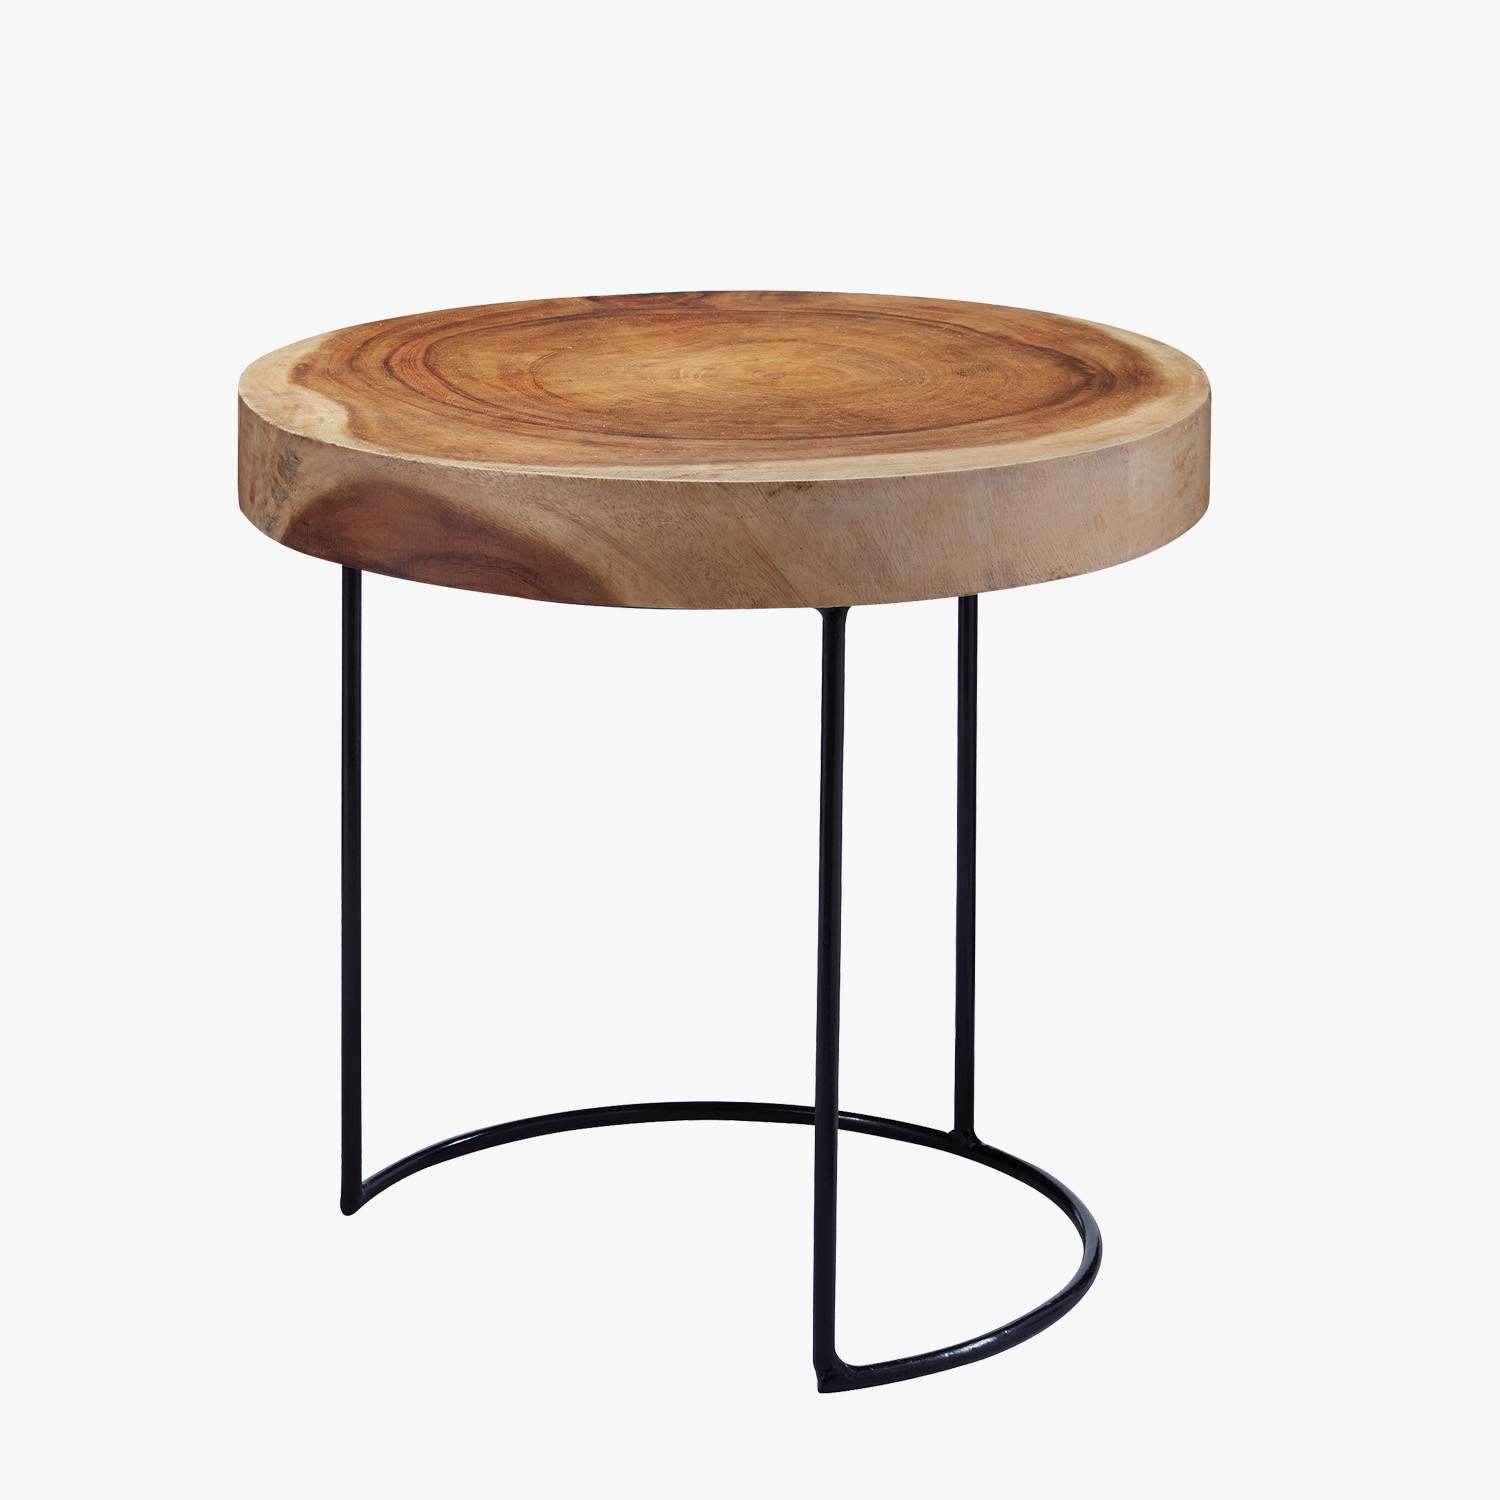 round suar wood accent table tables dear keaton oak glass and metal coffee nic bench diy desk plans patio end with umbrella hole parasol stand pole lamps next living room